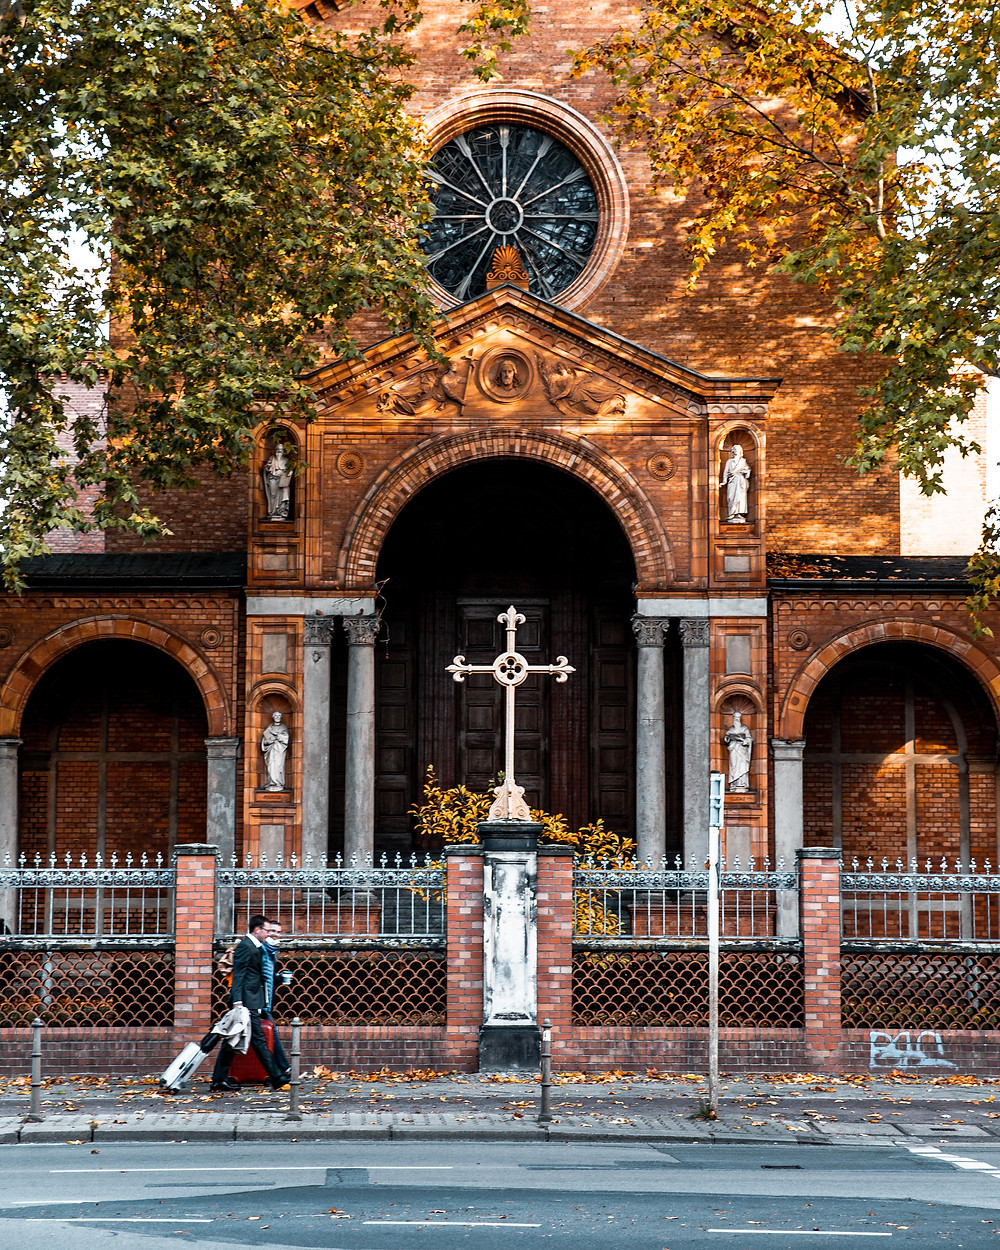 The English Church at the intersection of Kirchstrasse and Alt-Moabit in Moabit, Berlin.